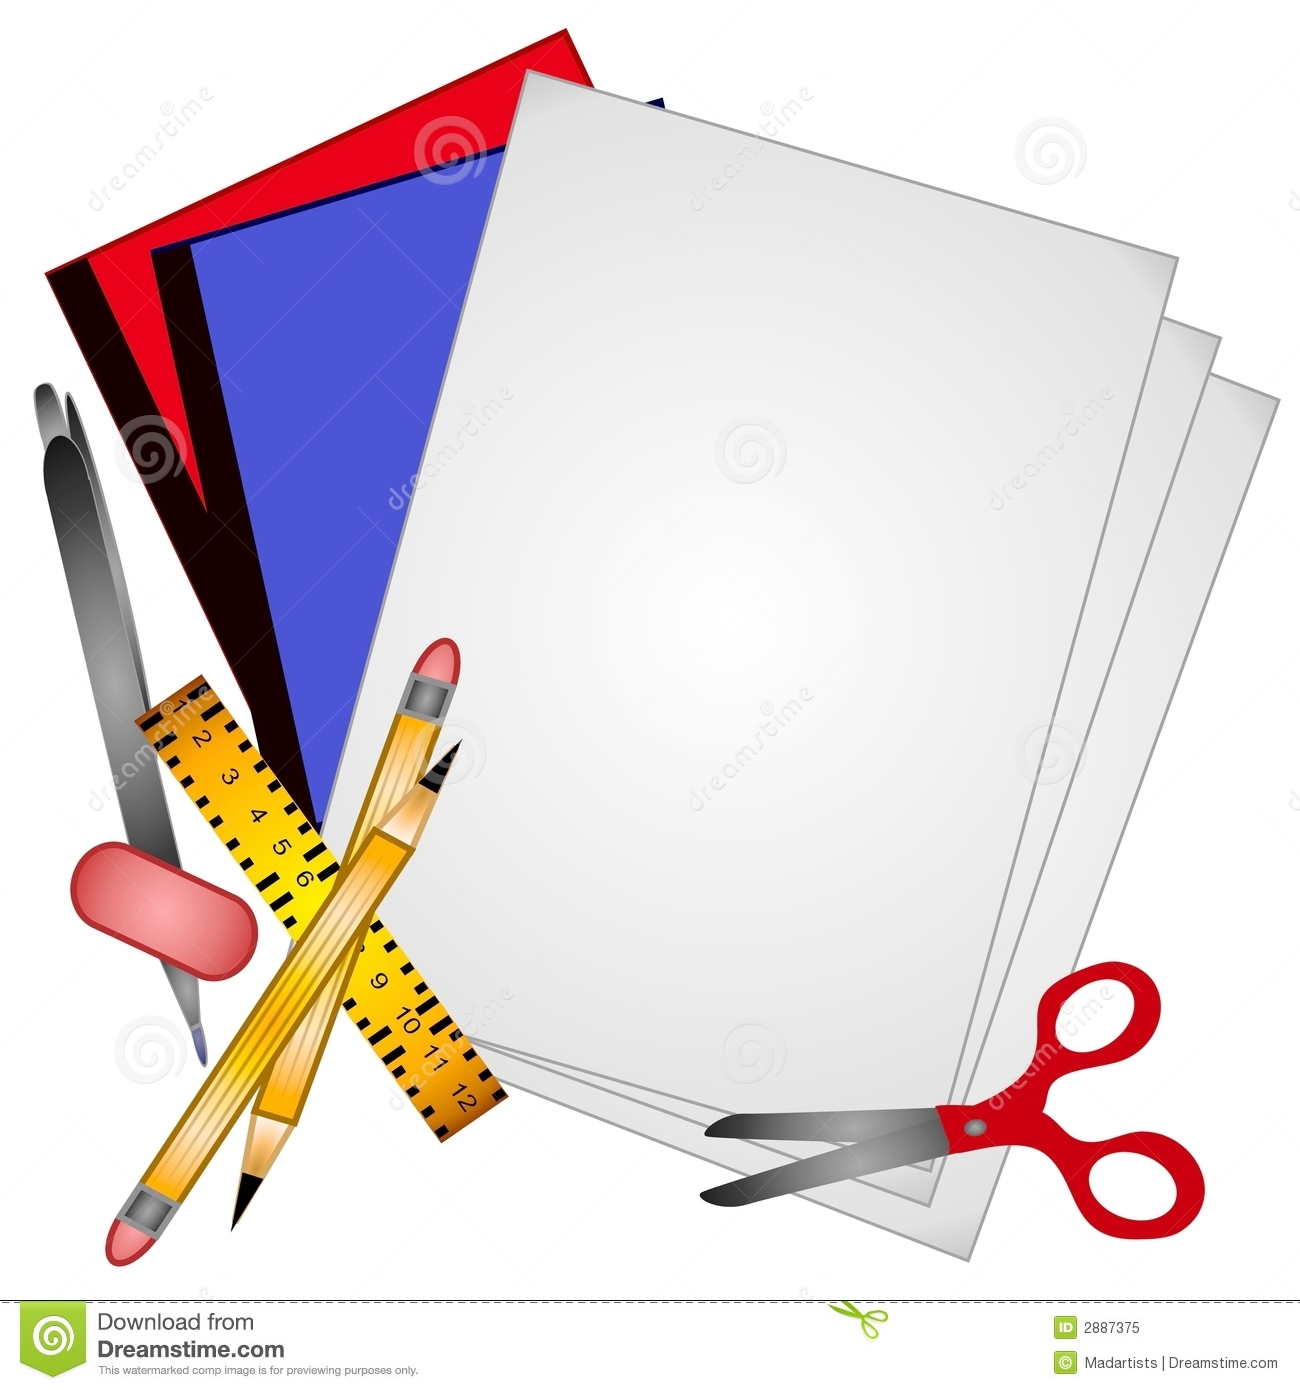 school supplies clip art 3 stock illustration illustration of rh dreamstime com school supplies clip art images school supply clipart images